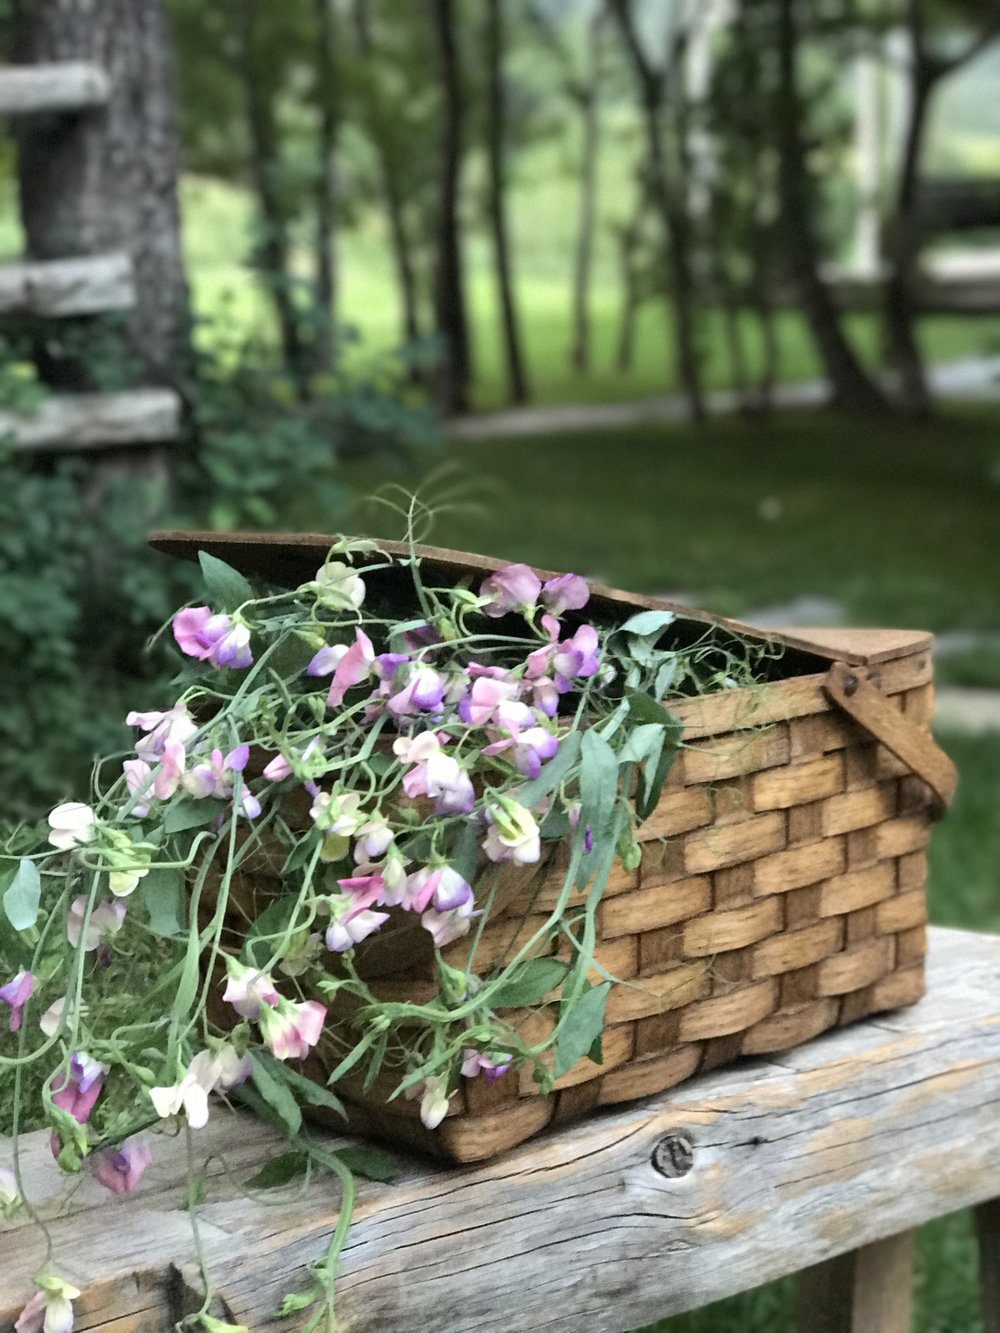 Sweetpeas-in-a picnic-basket.jpg